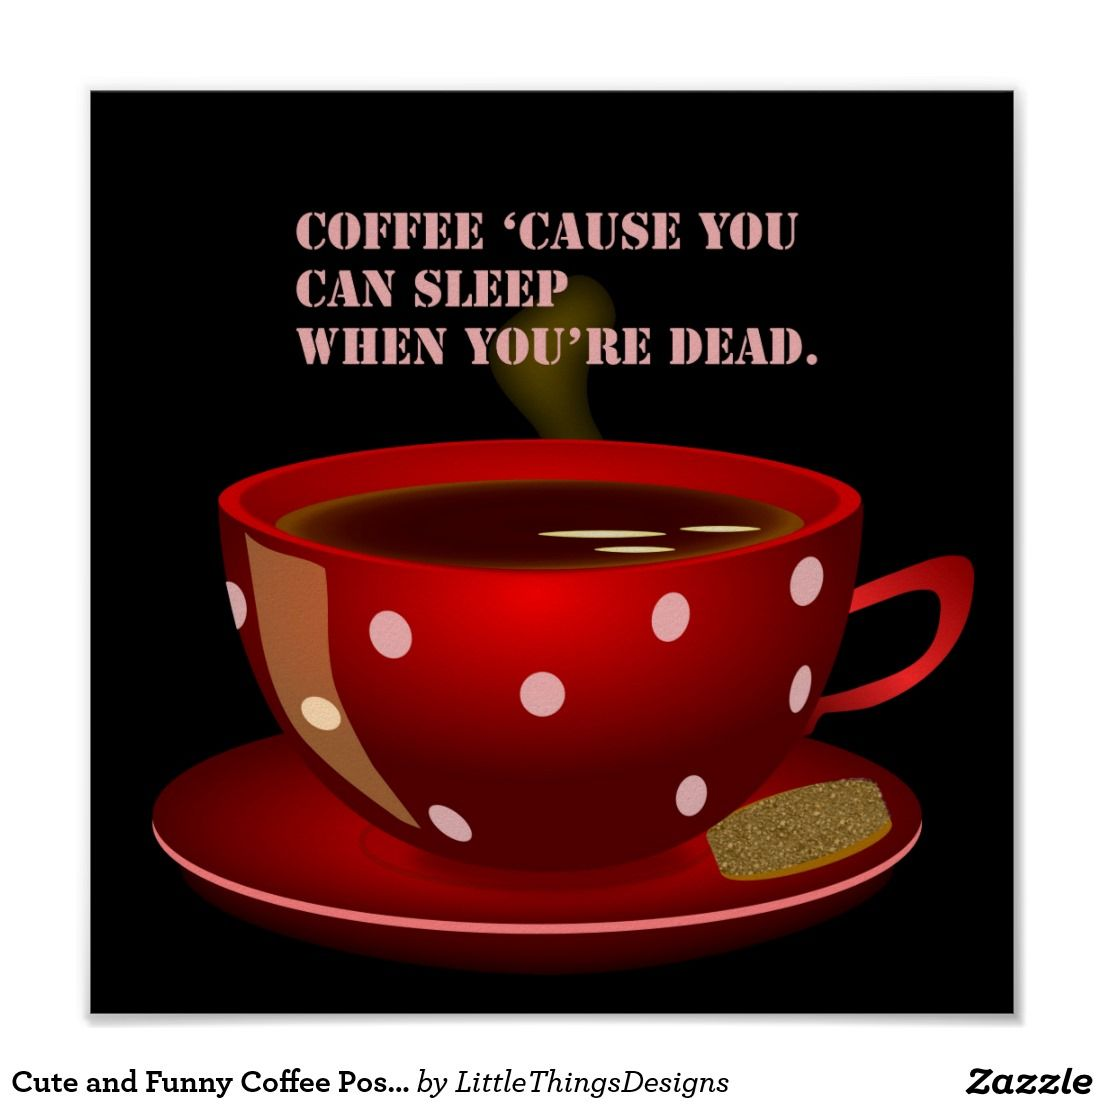 Cute And Funny Coffee Poster Zazzle Com In 2021 Coffee Humor Coffee Poster Coffee Smoothies